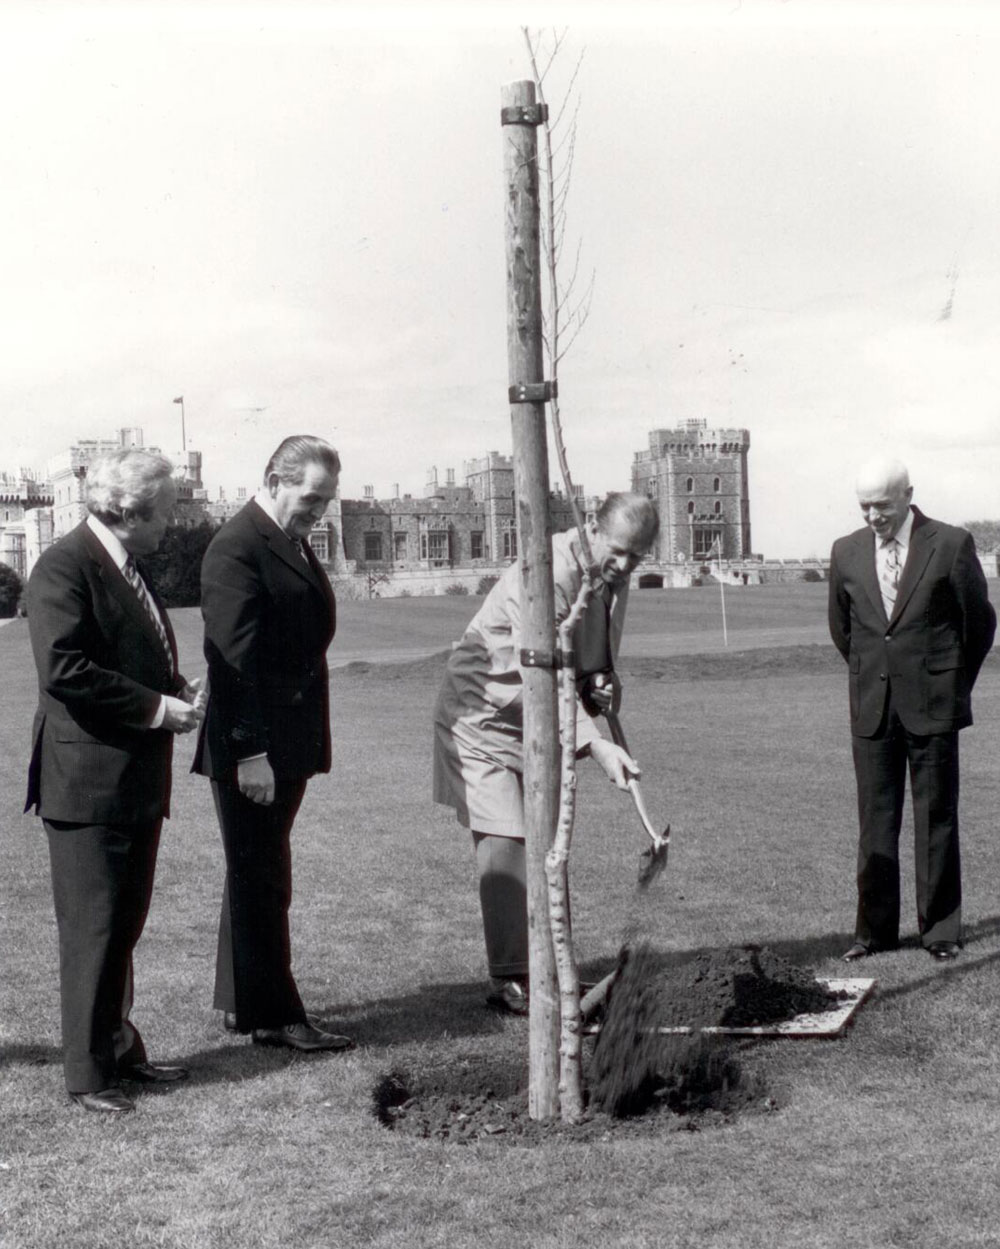 Prince Phillip planting an Elm tree.